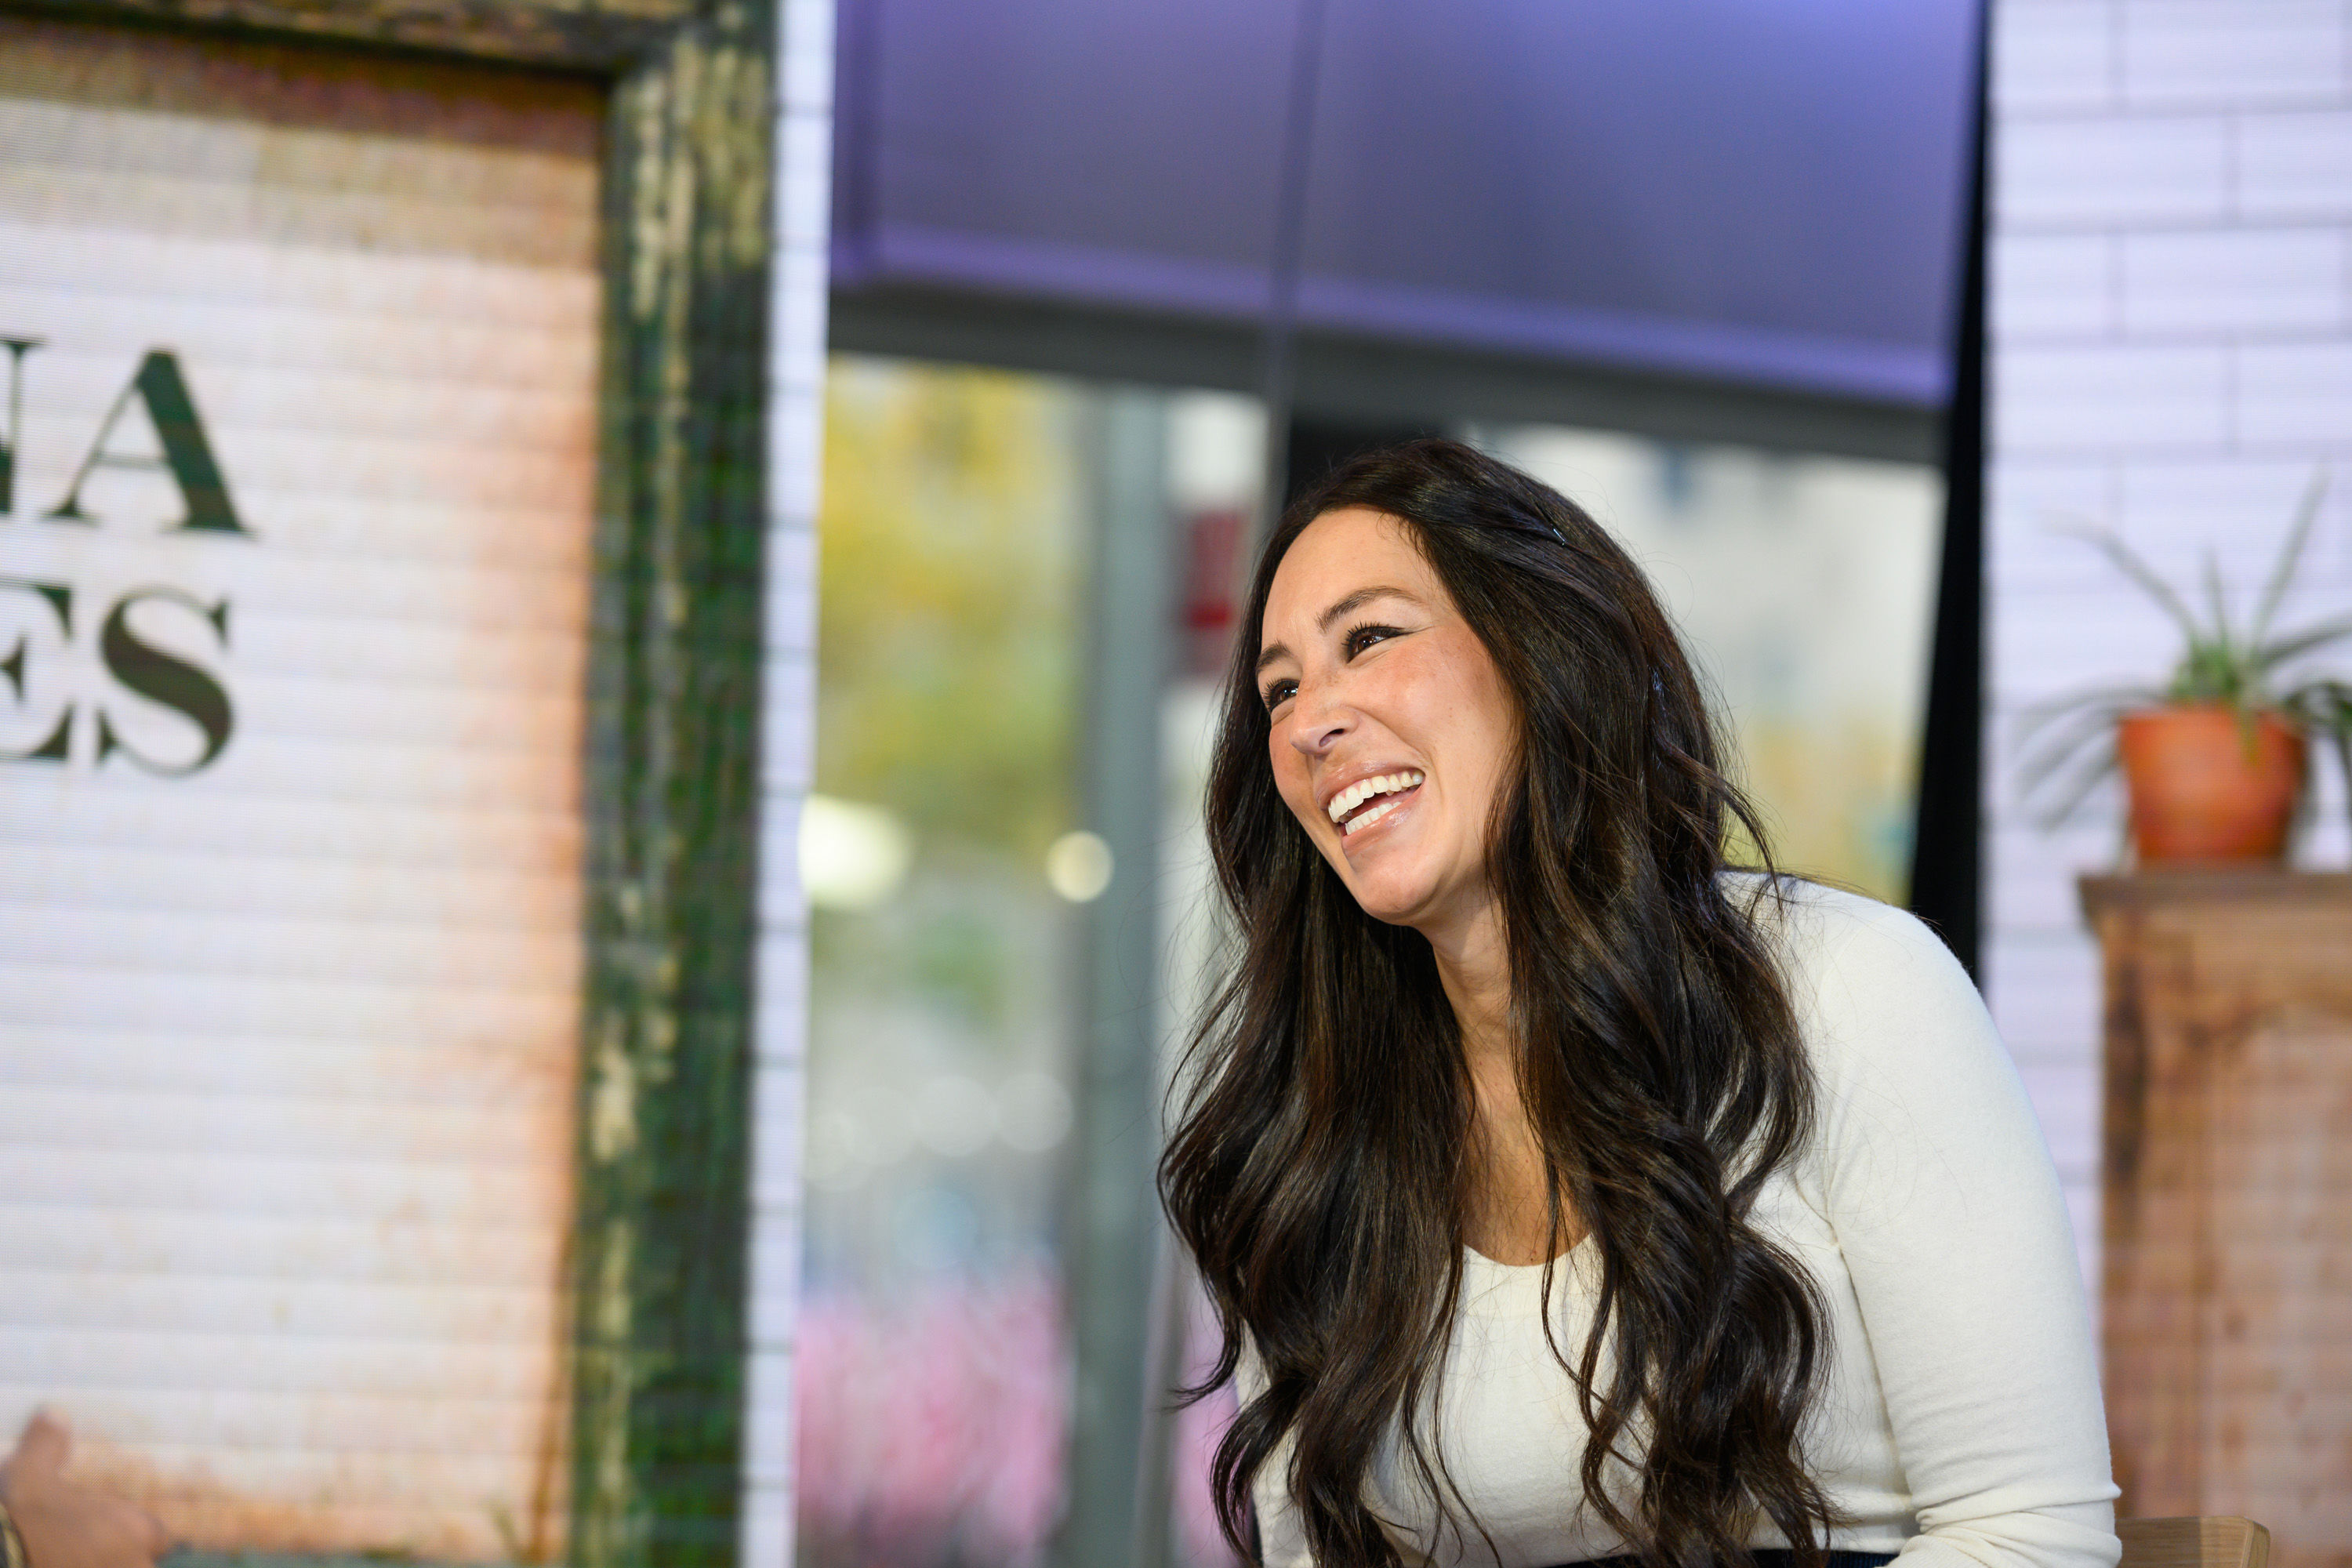 Joanna Gaines Meets Design Mom, the Blogger Who Launched Her Career